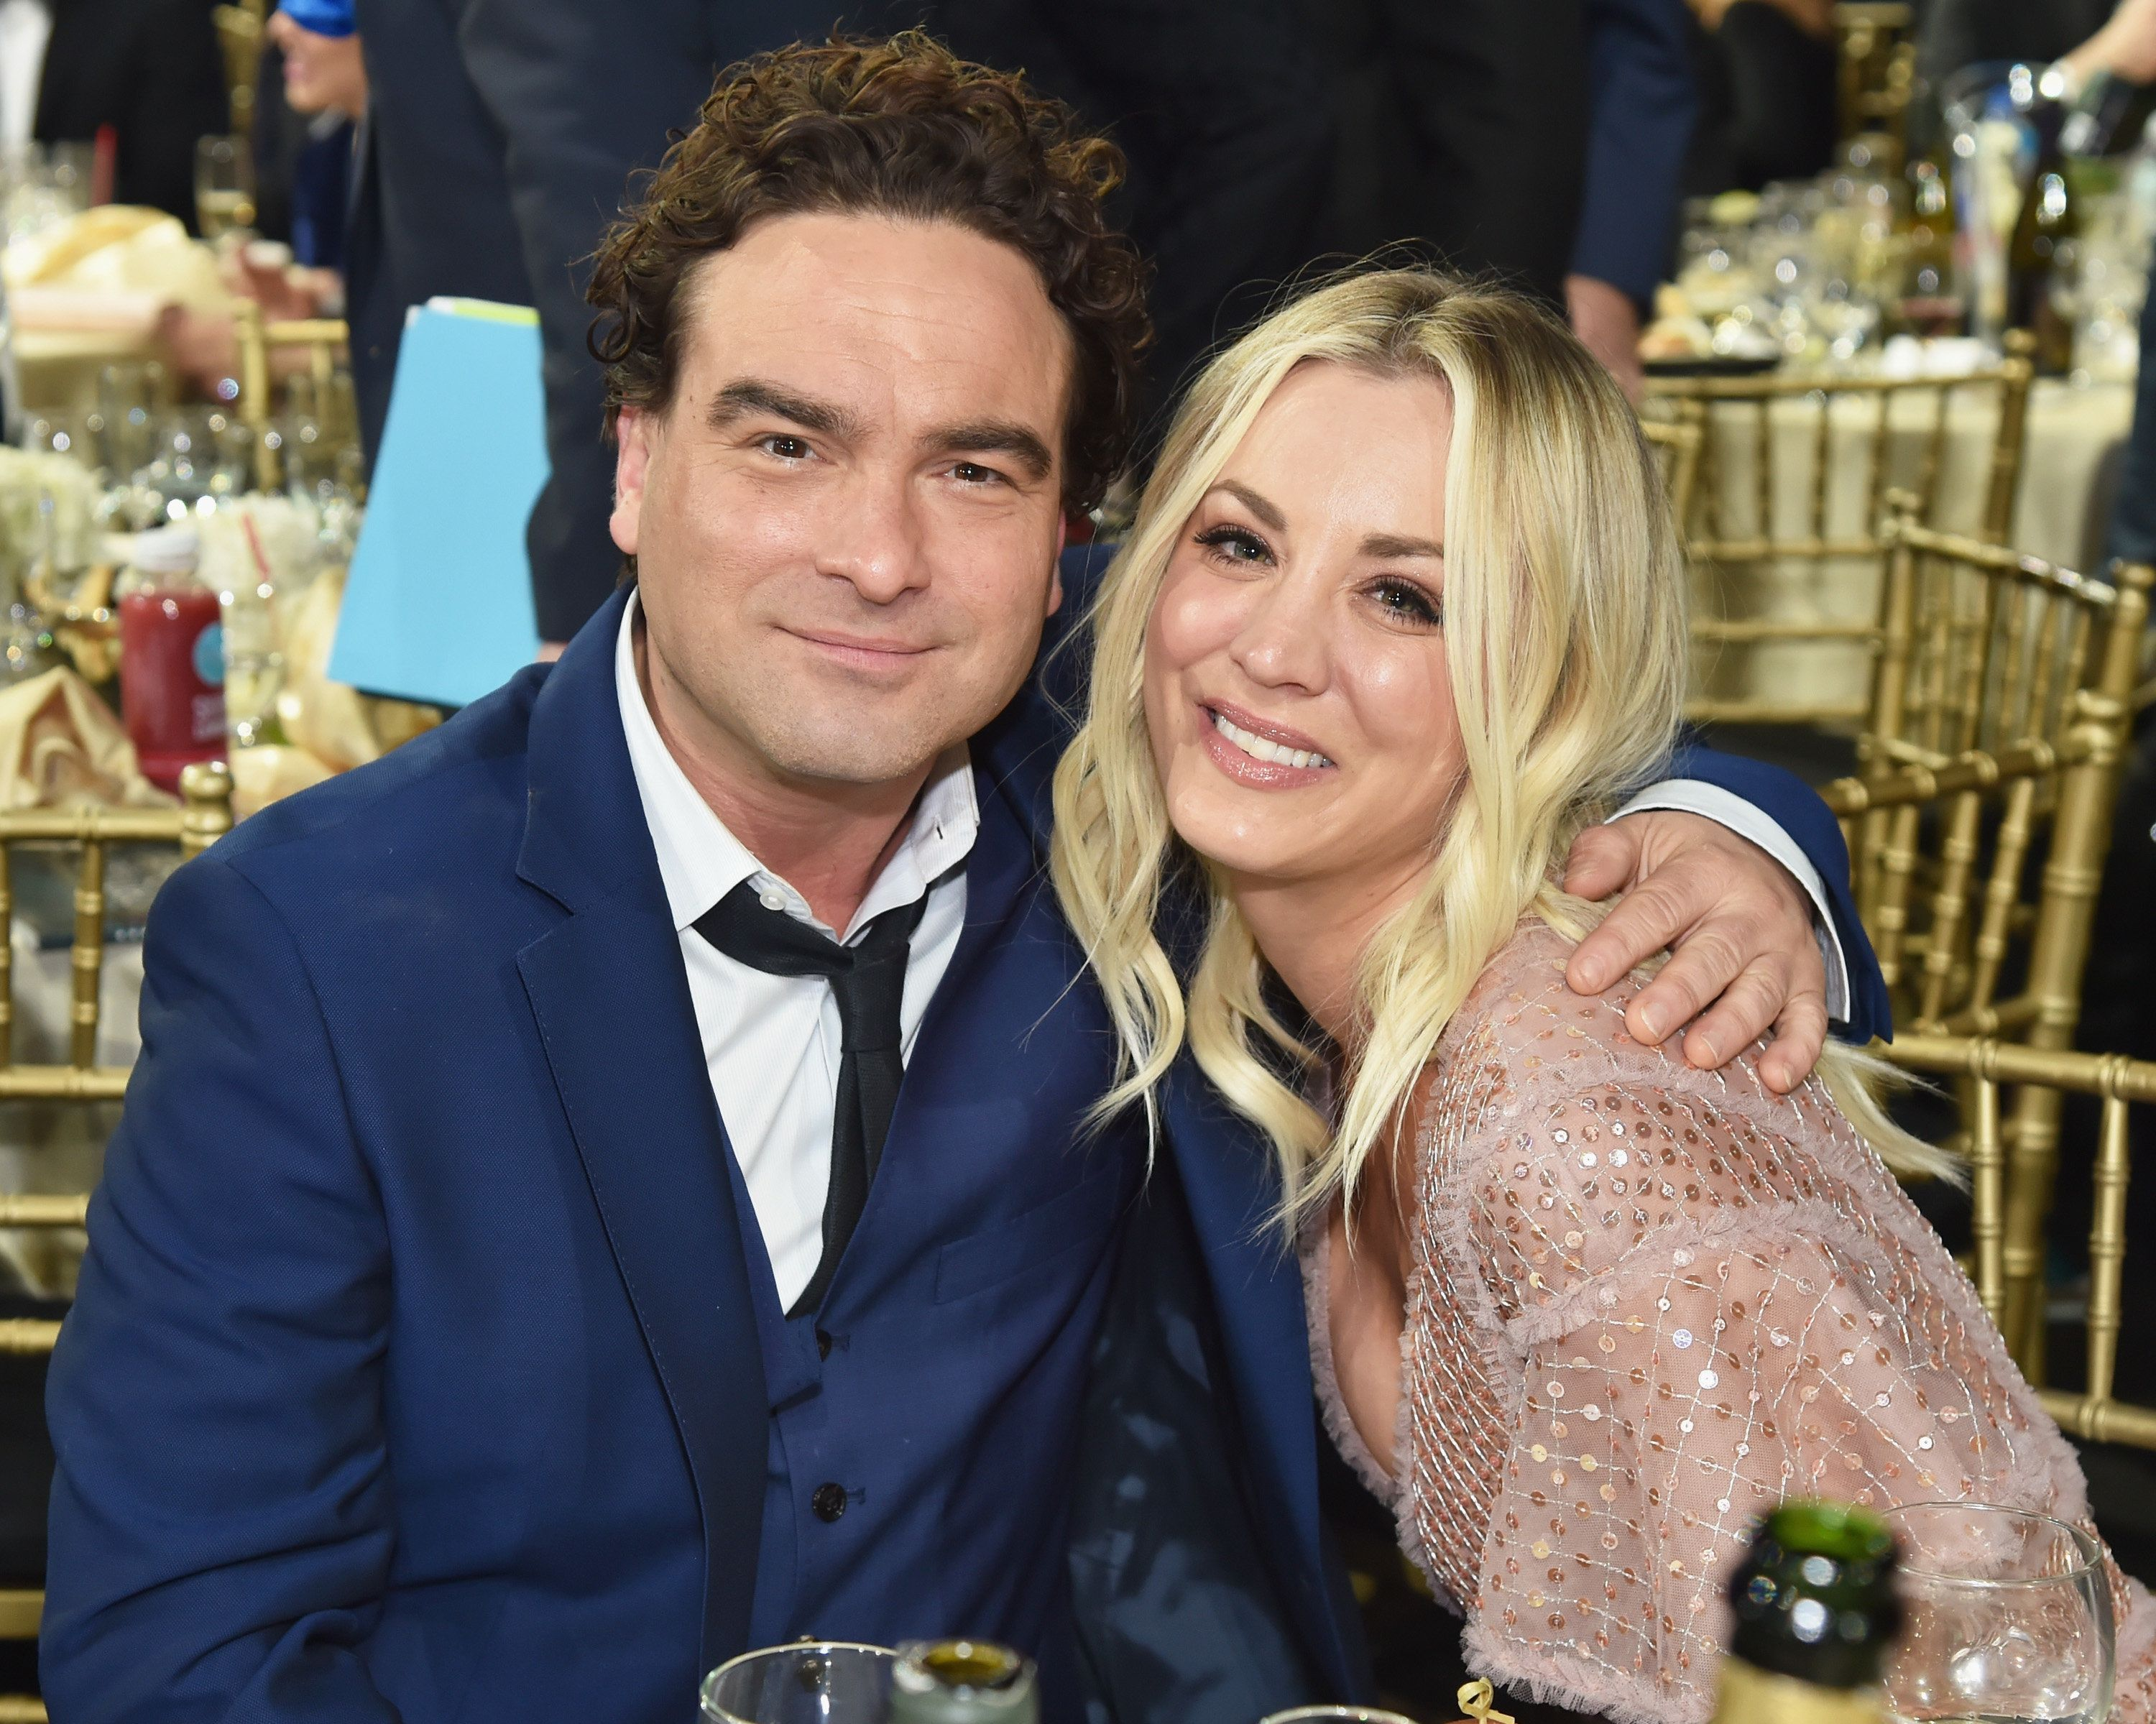 Johnny Galecki and Kaley Cuoco attend Annual Critics' Choice Awards on Jan. 11, in Santa